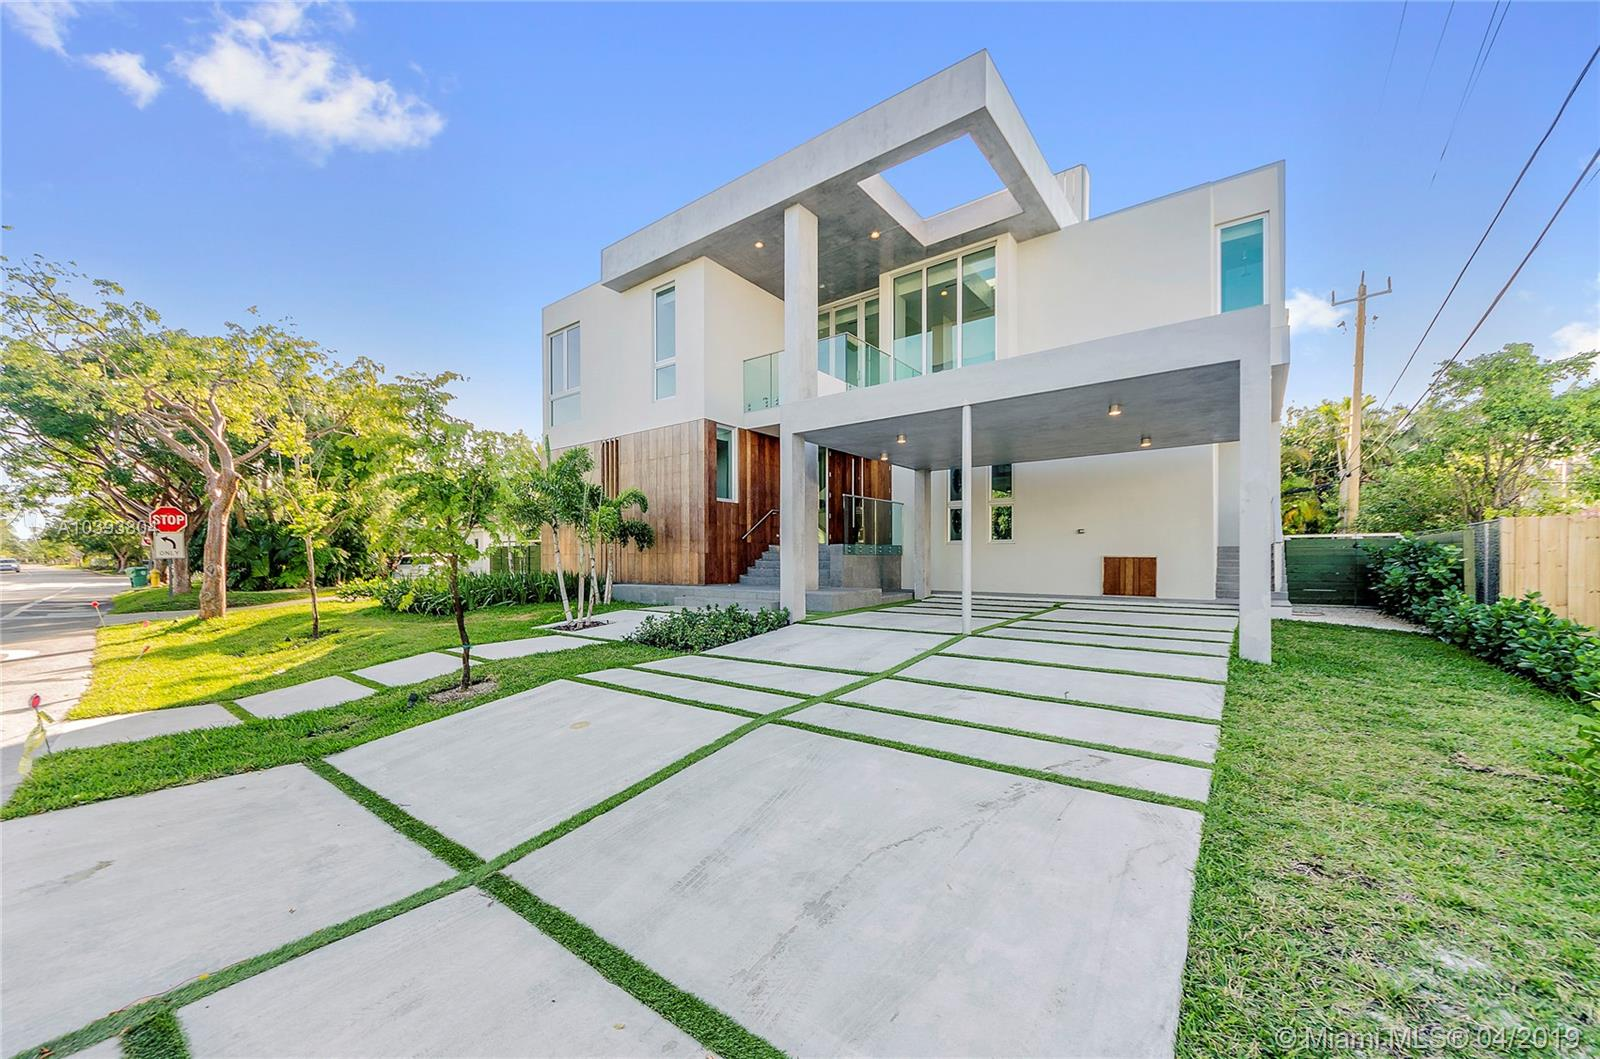 544 Ridgewood Rd 33149 - One of Key Biscayne Homes for Sale